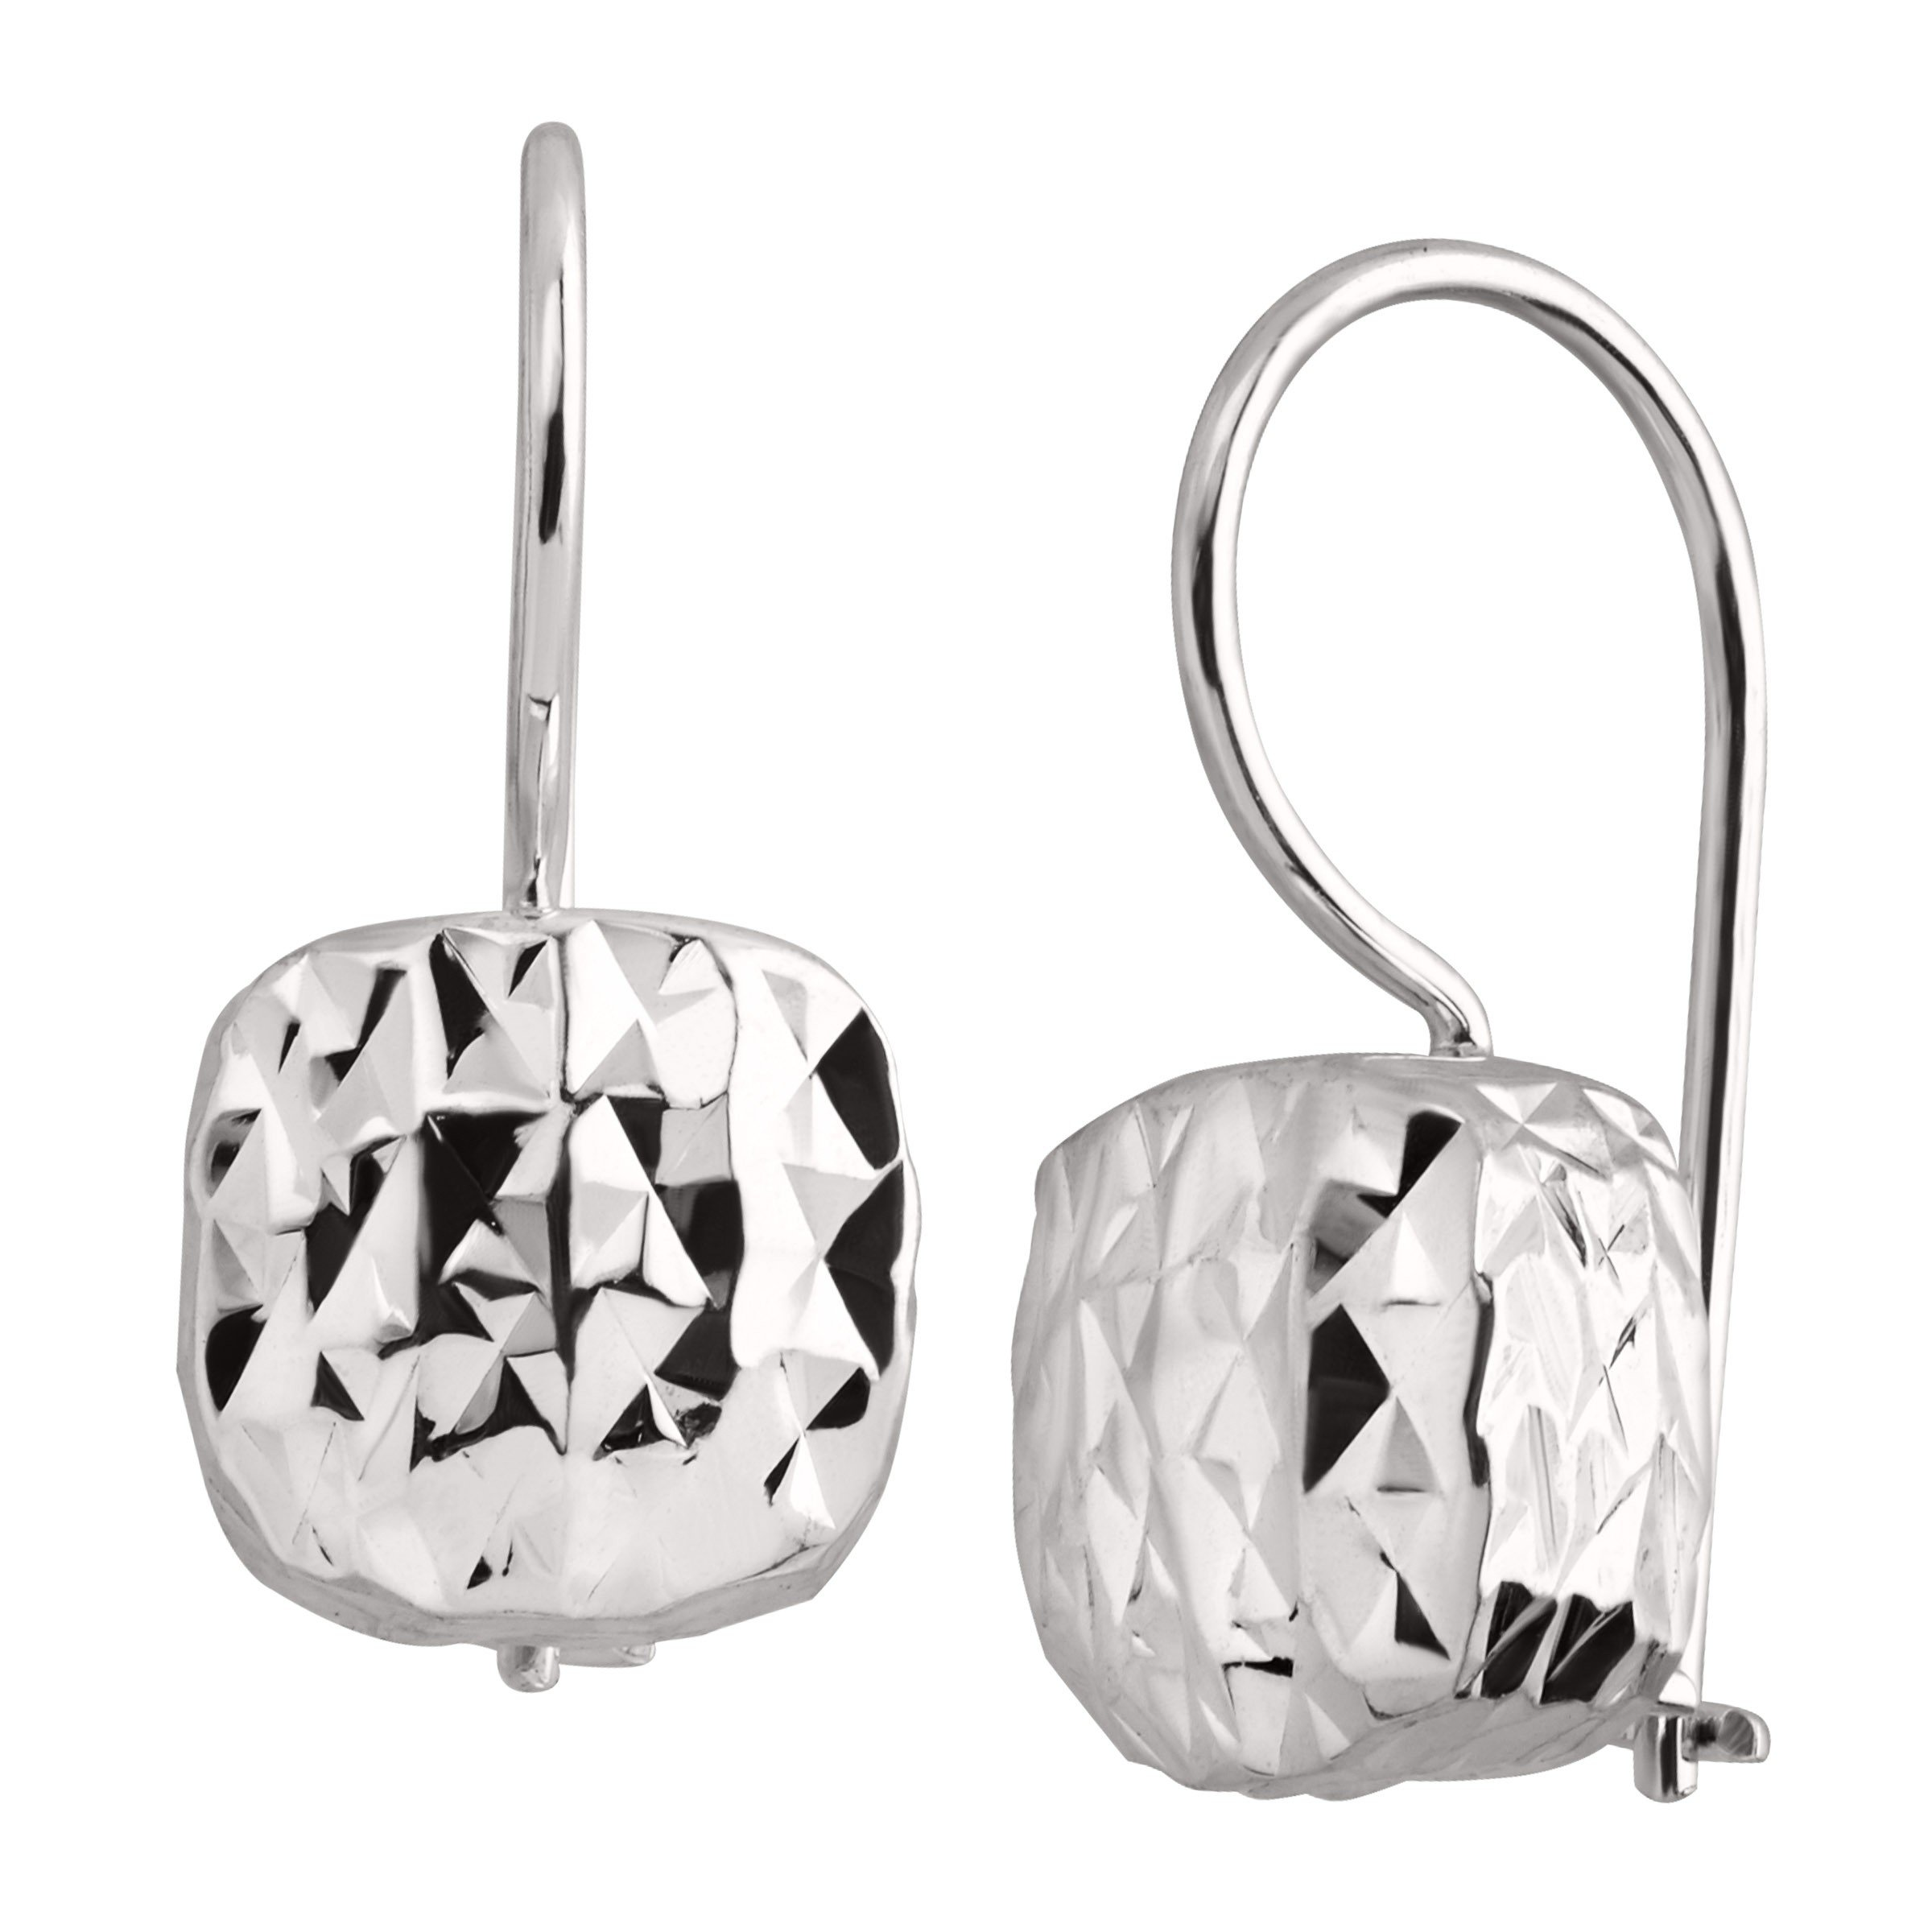 Silpada 'Rounded Cube' Textured Sterling Silver Drop Earrings